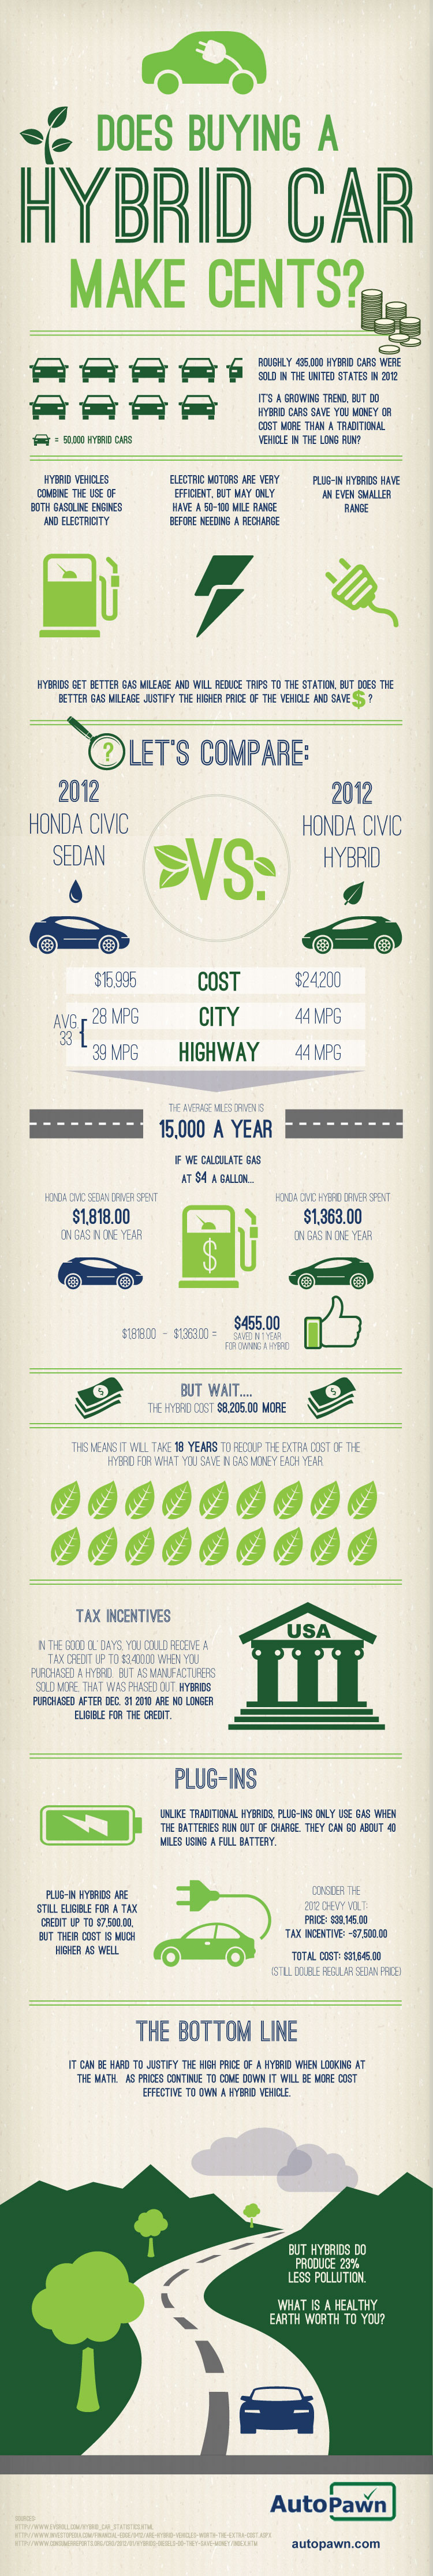 Does Buying A Hybrid Car Make Cents